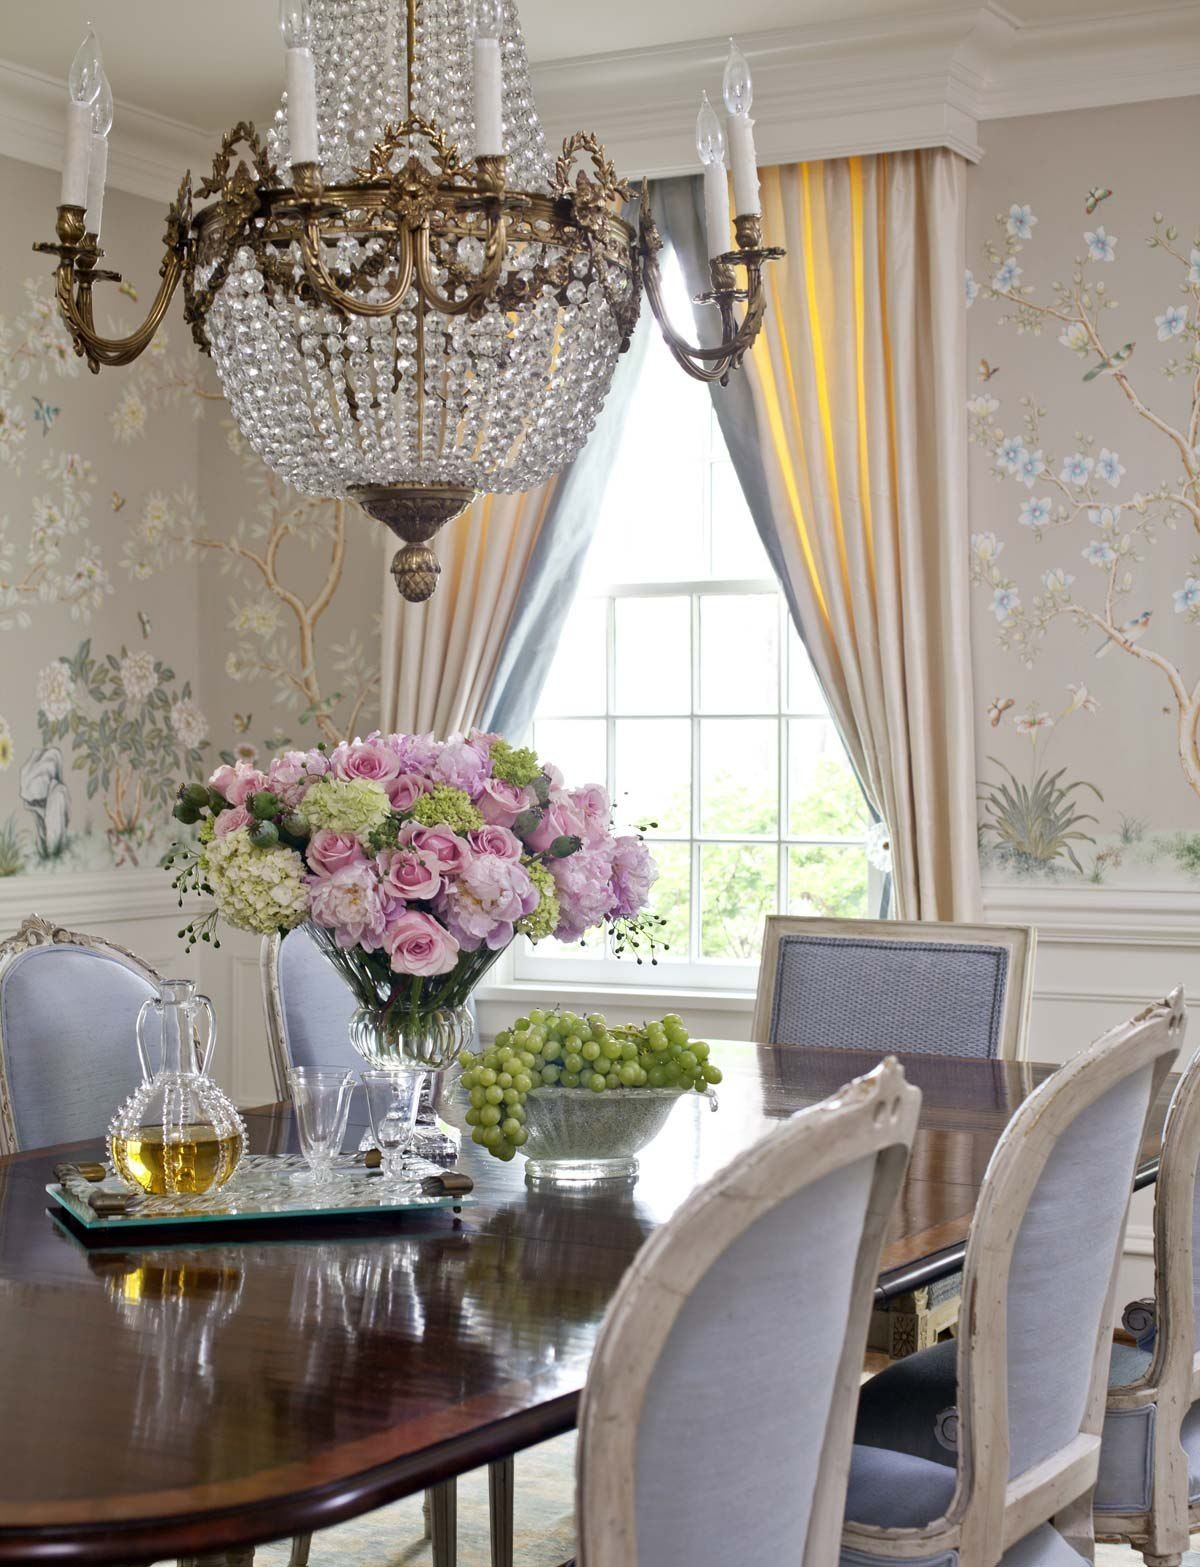 lovely dining room exudes relaxation and lightness